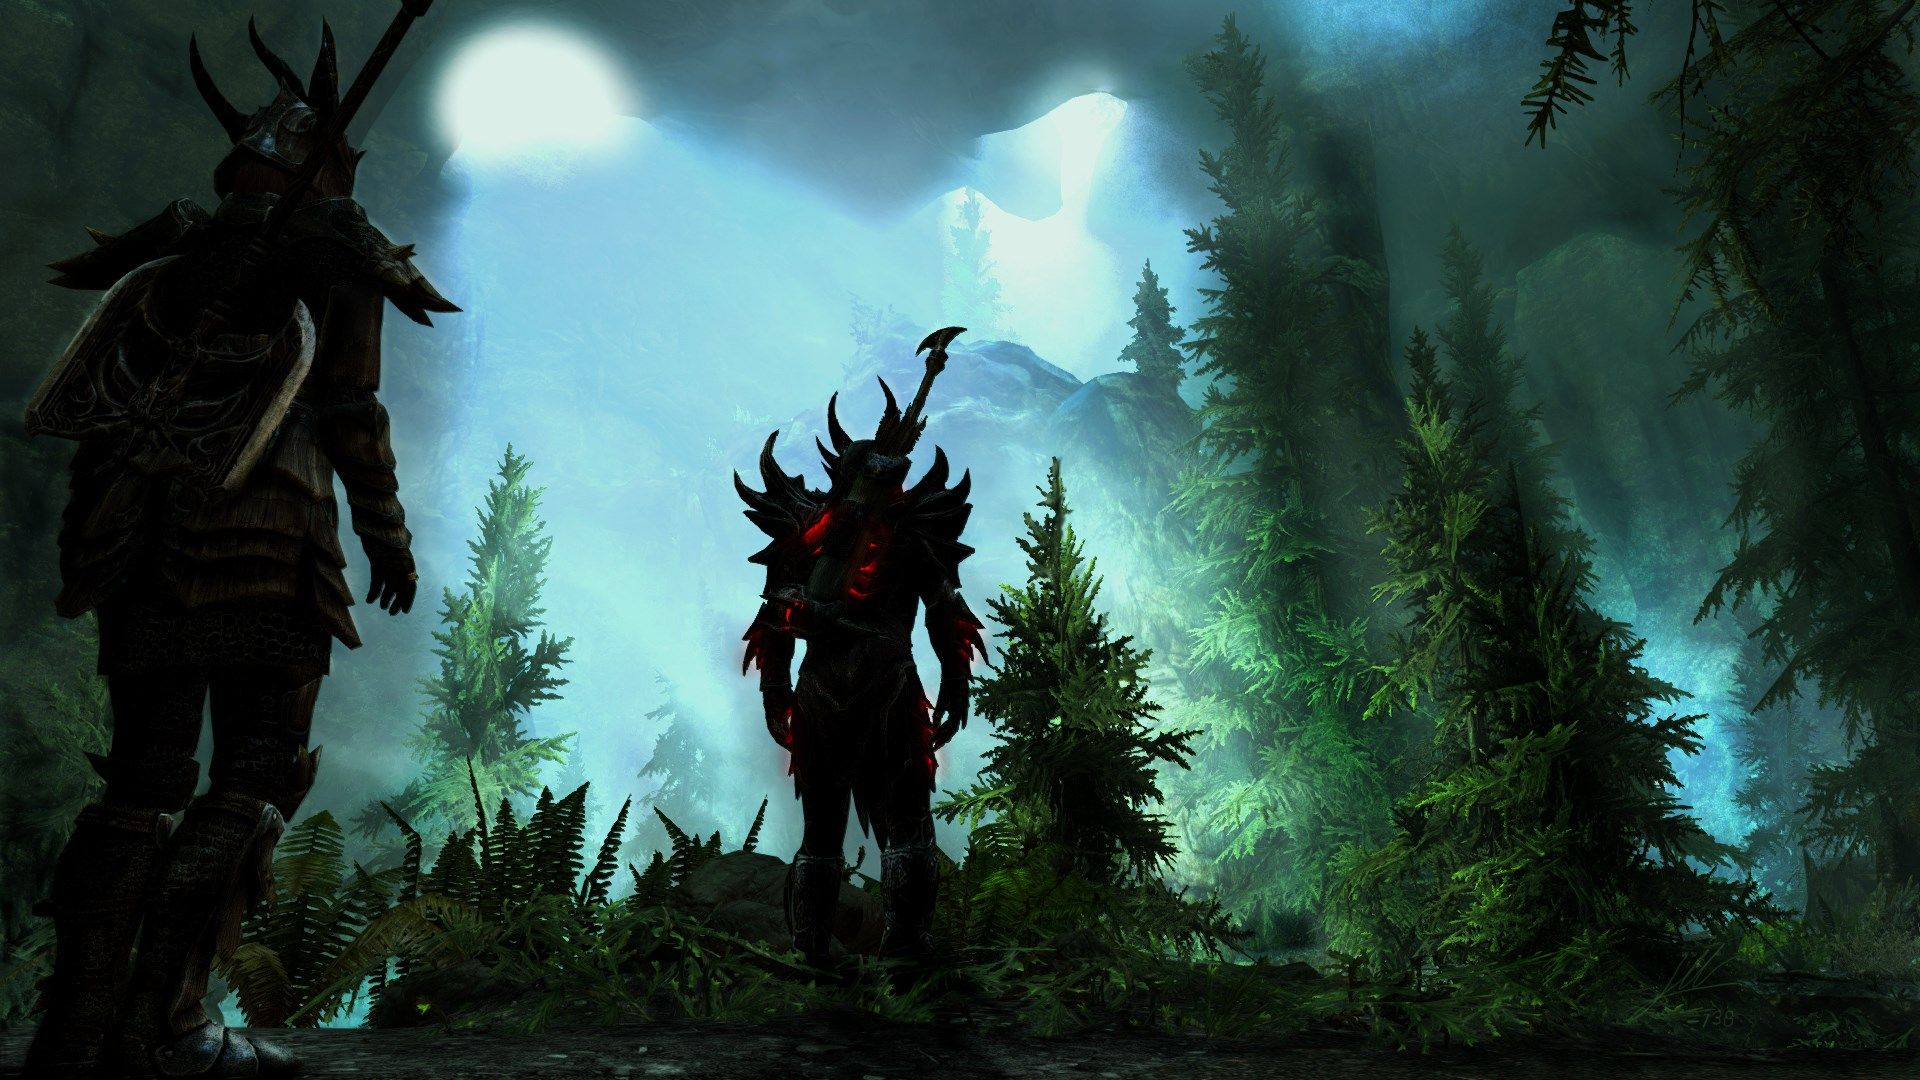 1920x1080 Widescreen Wallpaper The Elder Scrolls V Skyrim Con